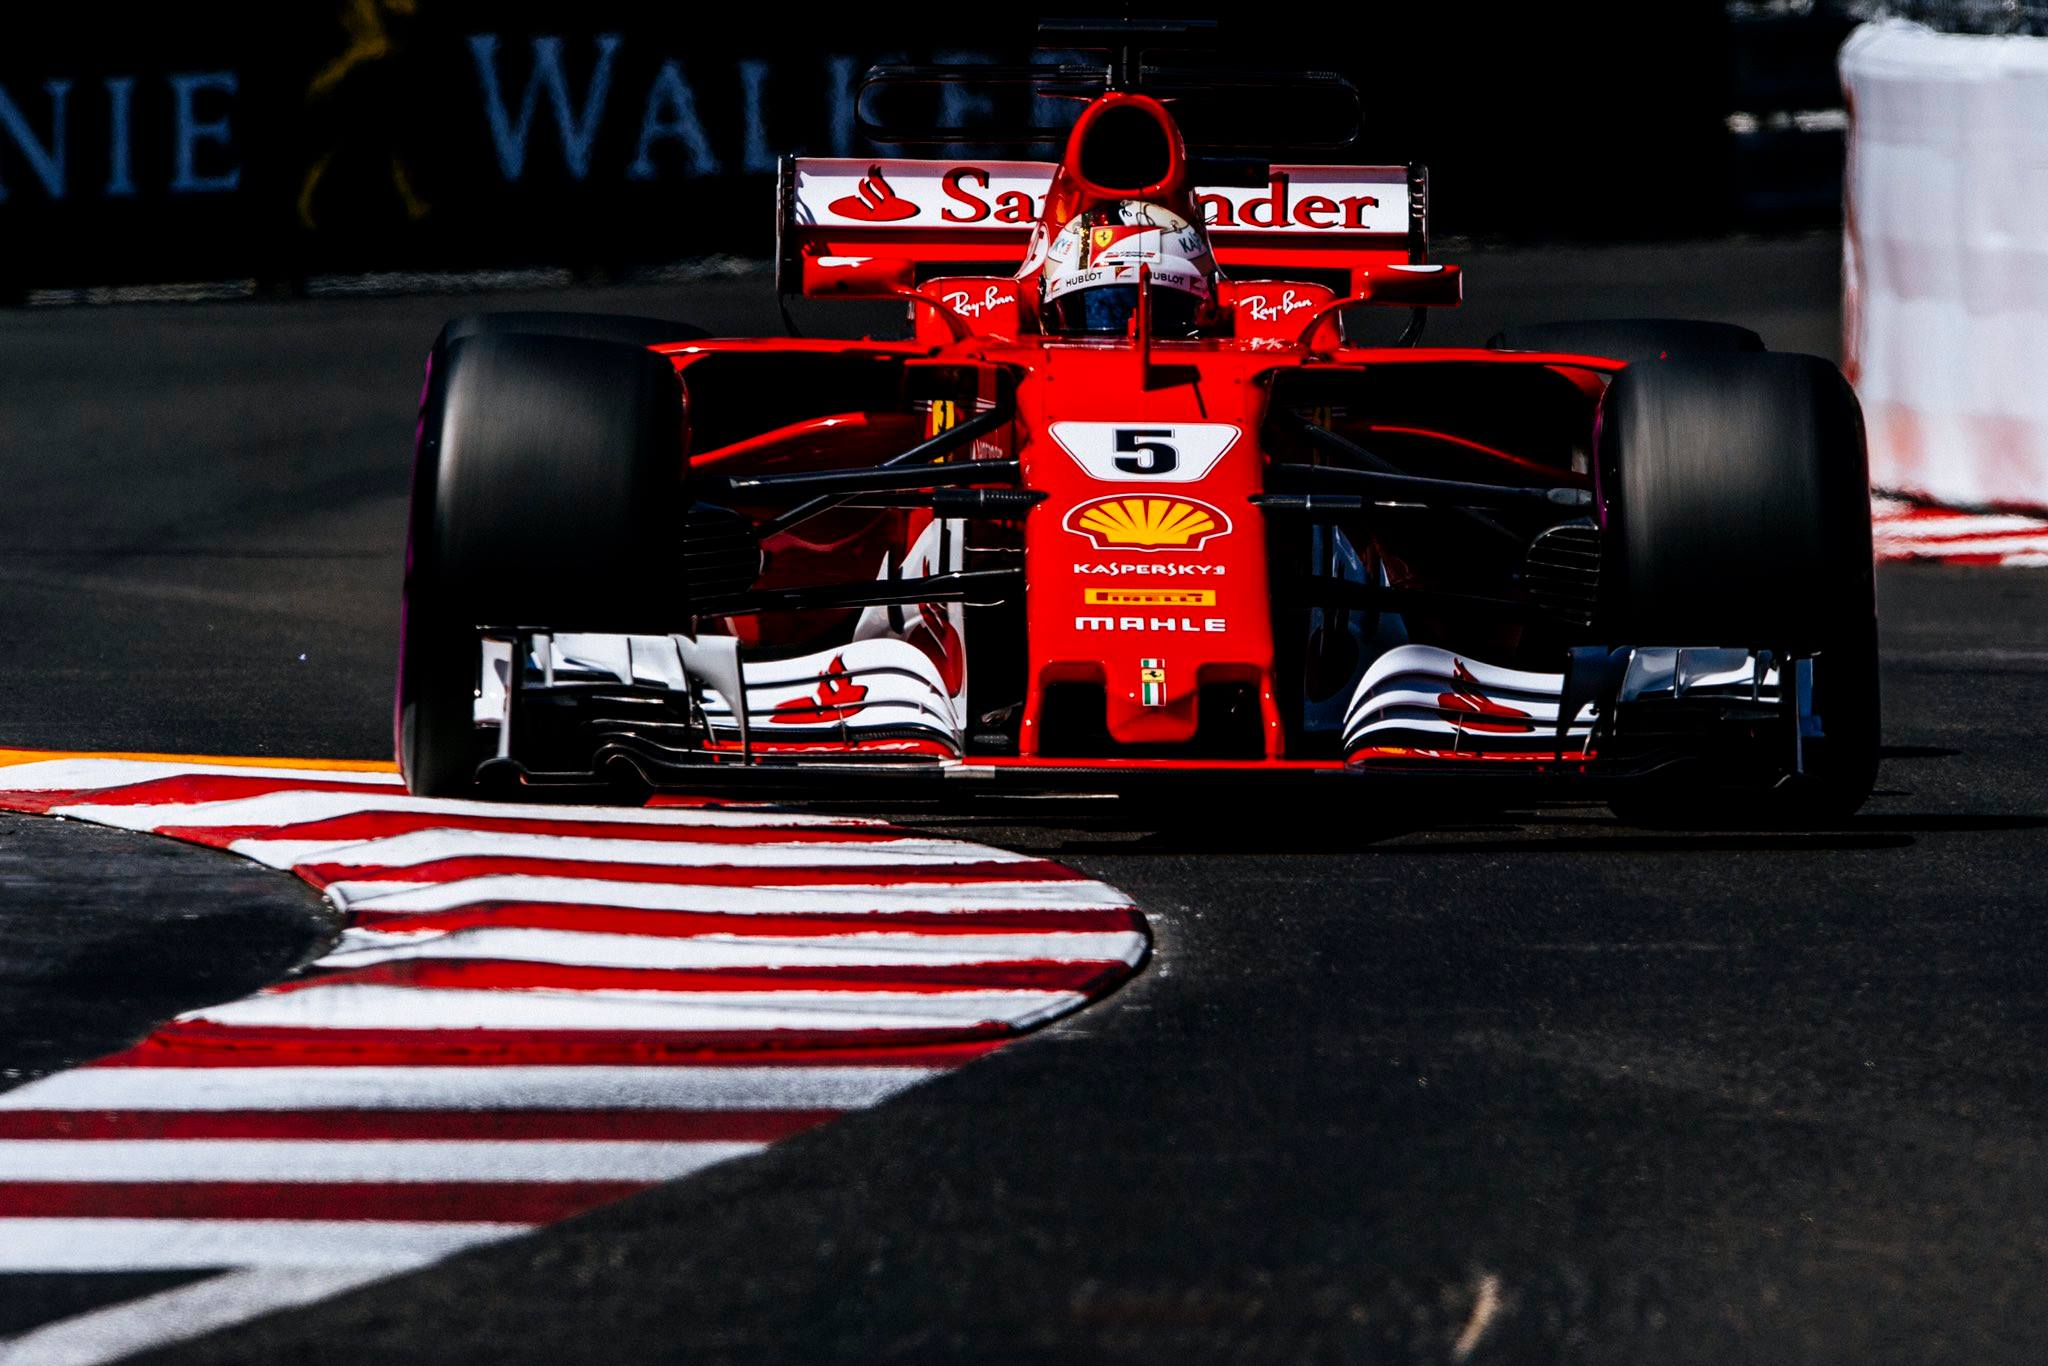 Kimi Raikkonen is a victim of the old Ferrari one-two